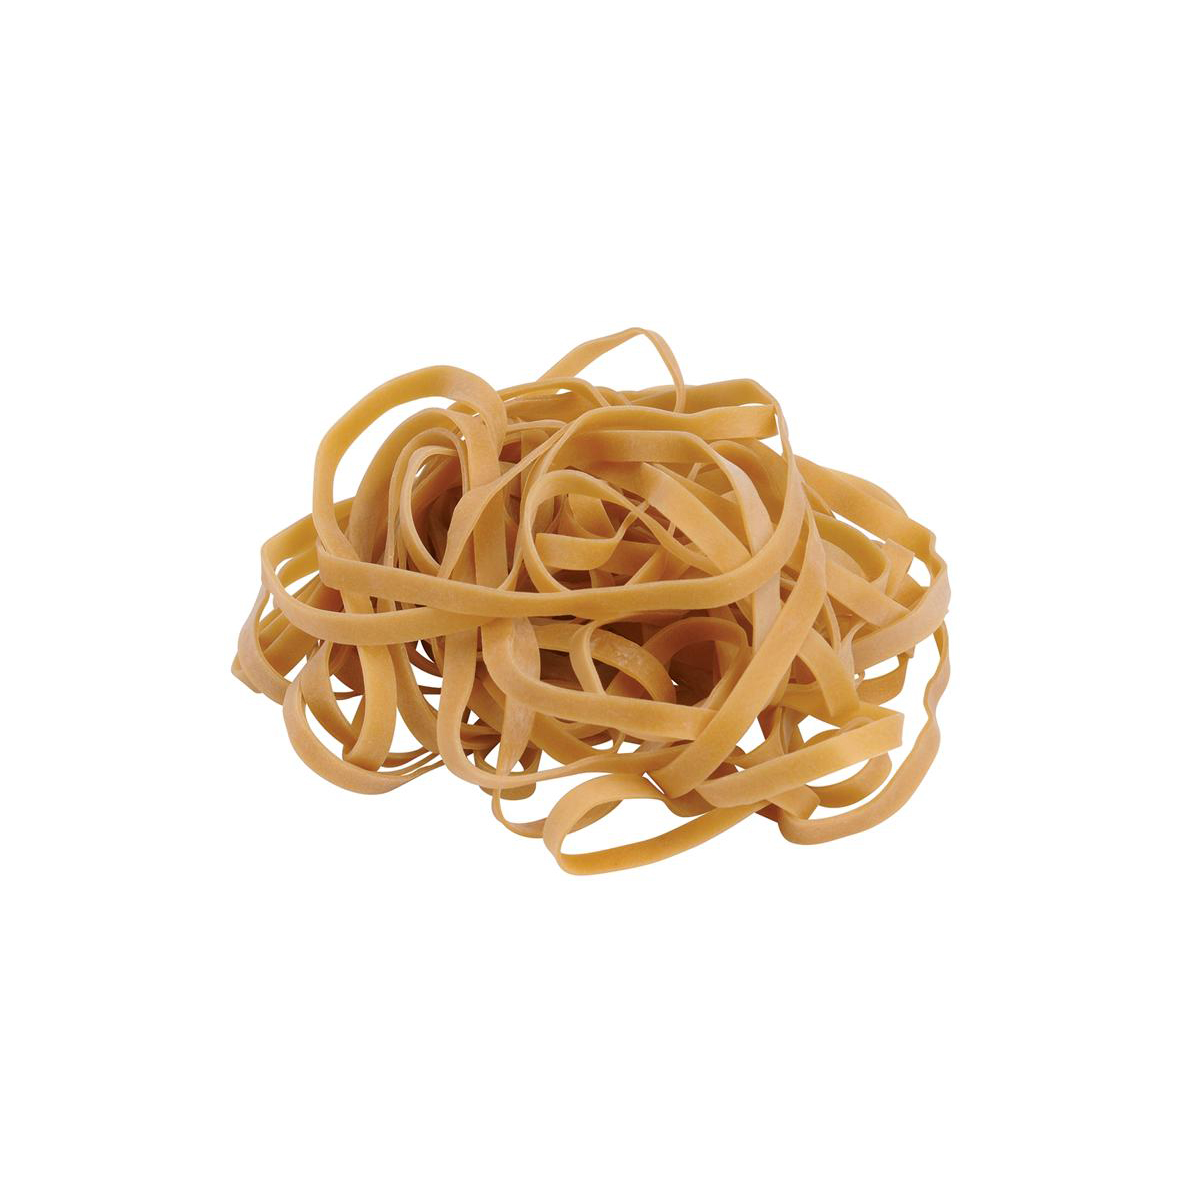 5 Star Office Rubber Bands No.69 Each 152x6mm Approx 141 Bands Bag 0.454kg